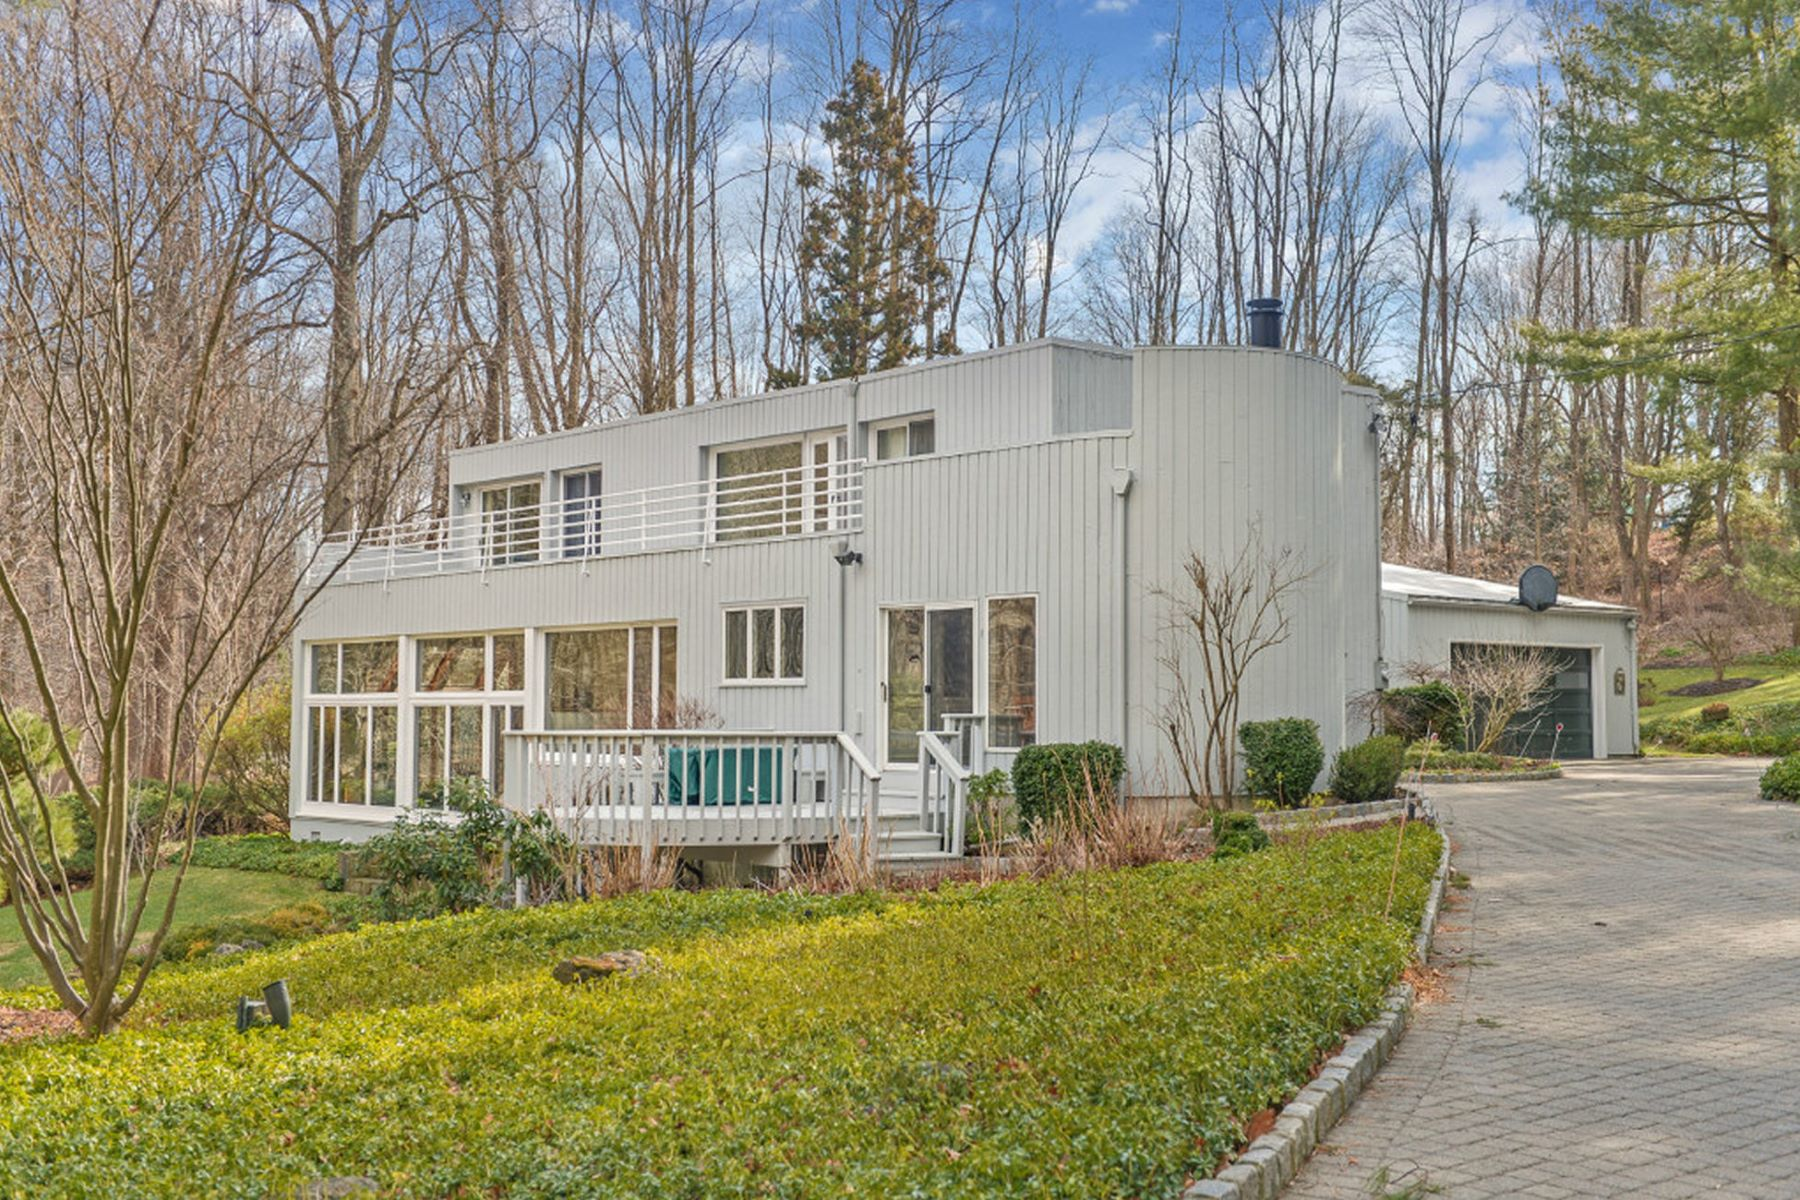 Single Family Home for Sale at Contemporary Country Estate 71 Washington Corner Road Bernardsville, New Jersey, 07924 United States